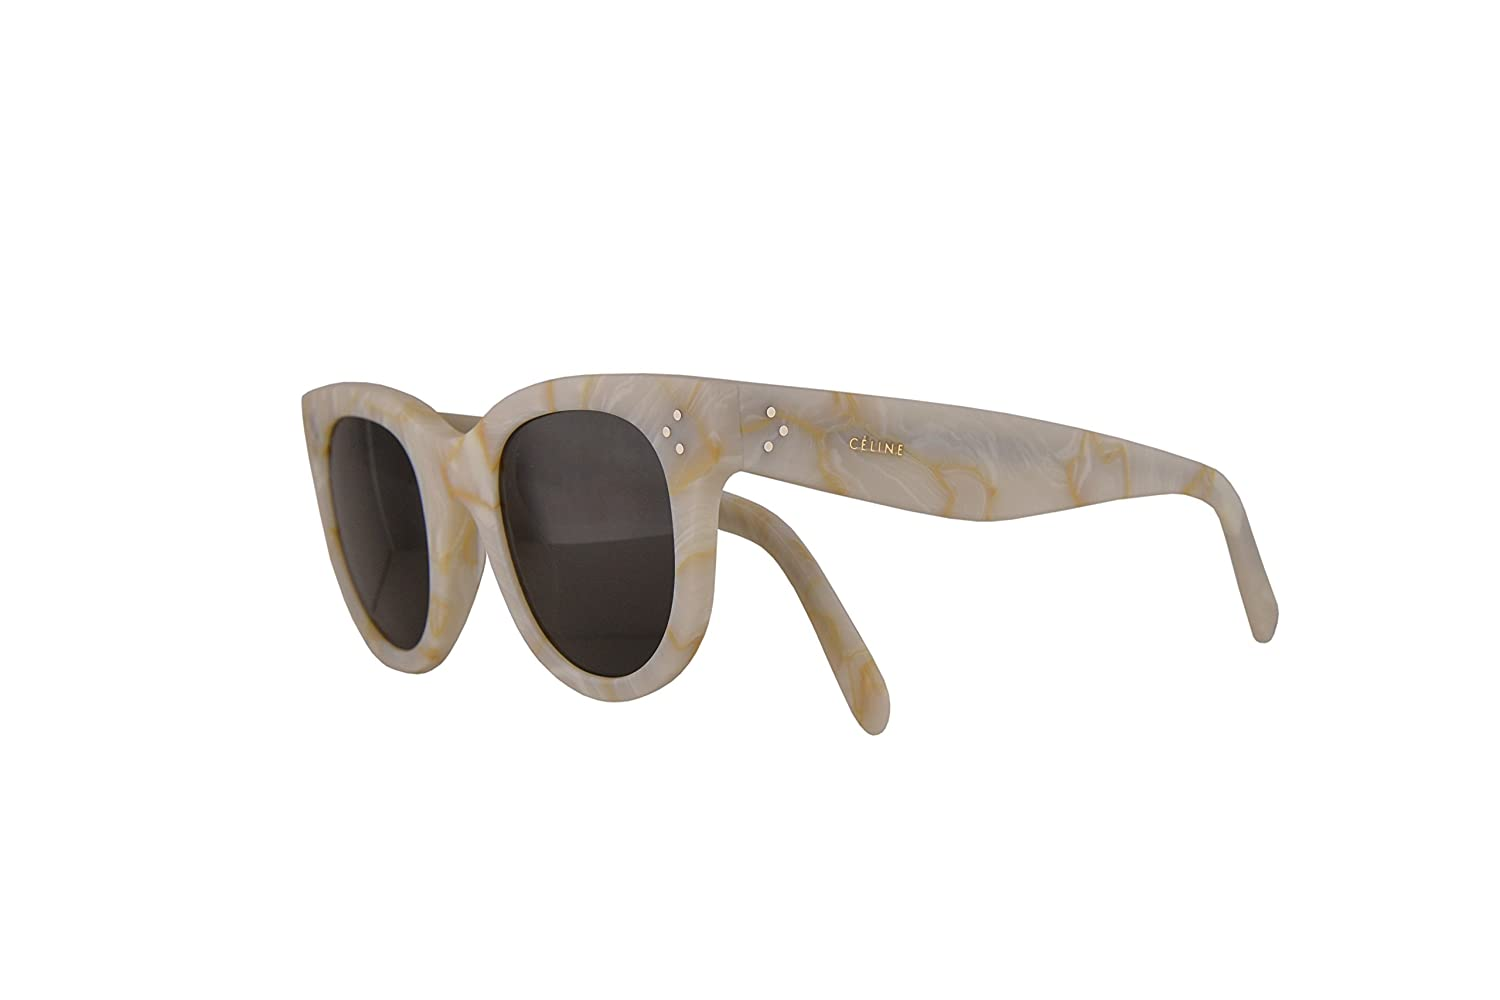 4c85ff2c5d0 Celine CL41053 S Baby Audrey Sunglasses White w Brown Lens 47mm 21JNR  CL41053S CL 41053 S  Amazon.co.uk  Clothing